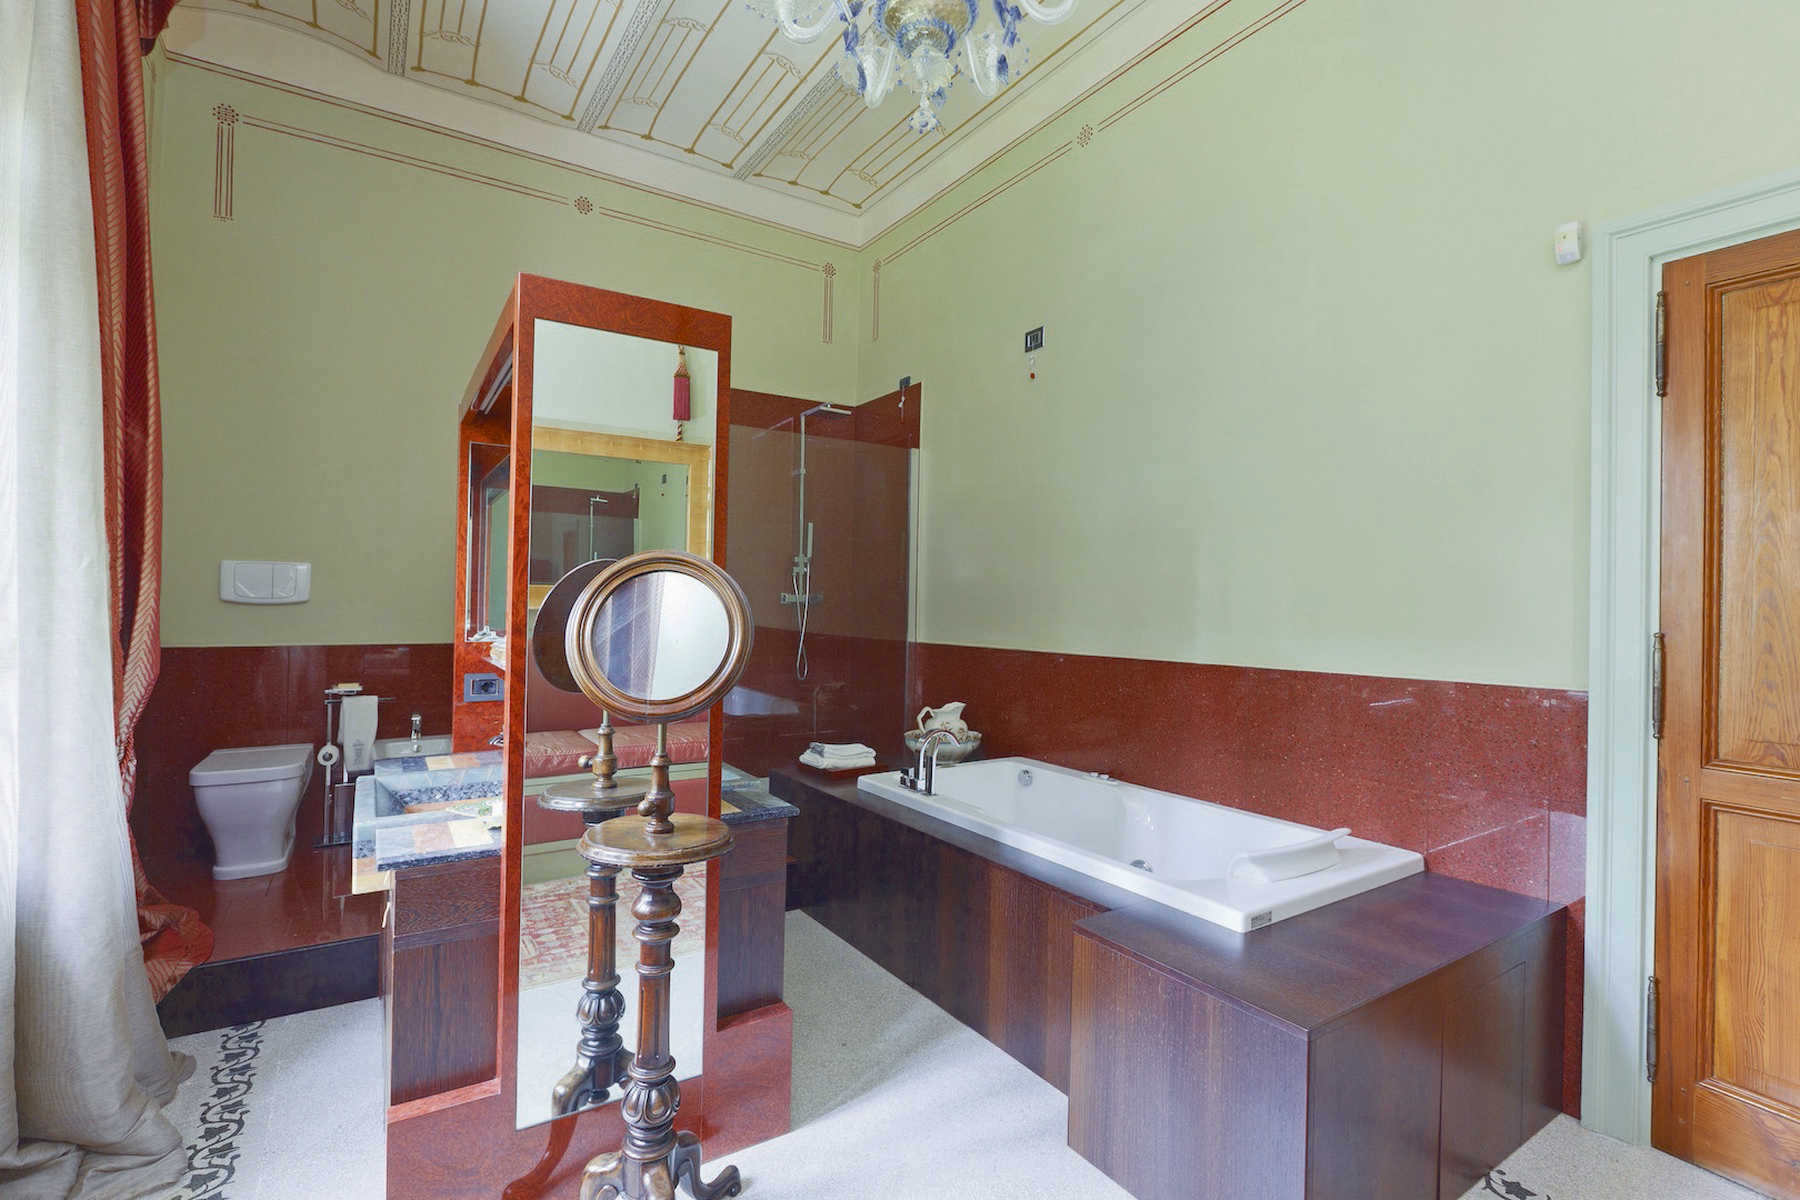 Additional photo for property listing at Villa Cardinali Contrada Schito Treia, Macerata 62010 Italy